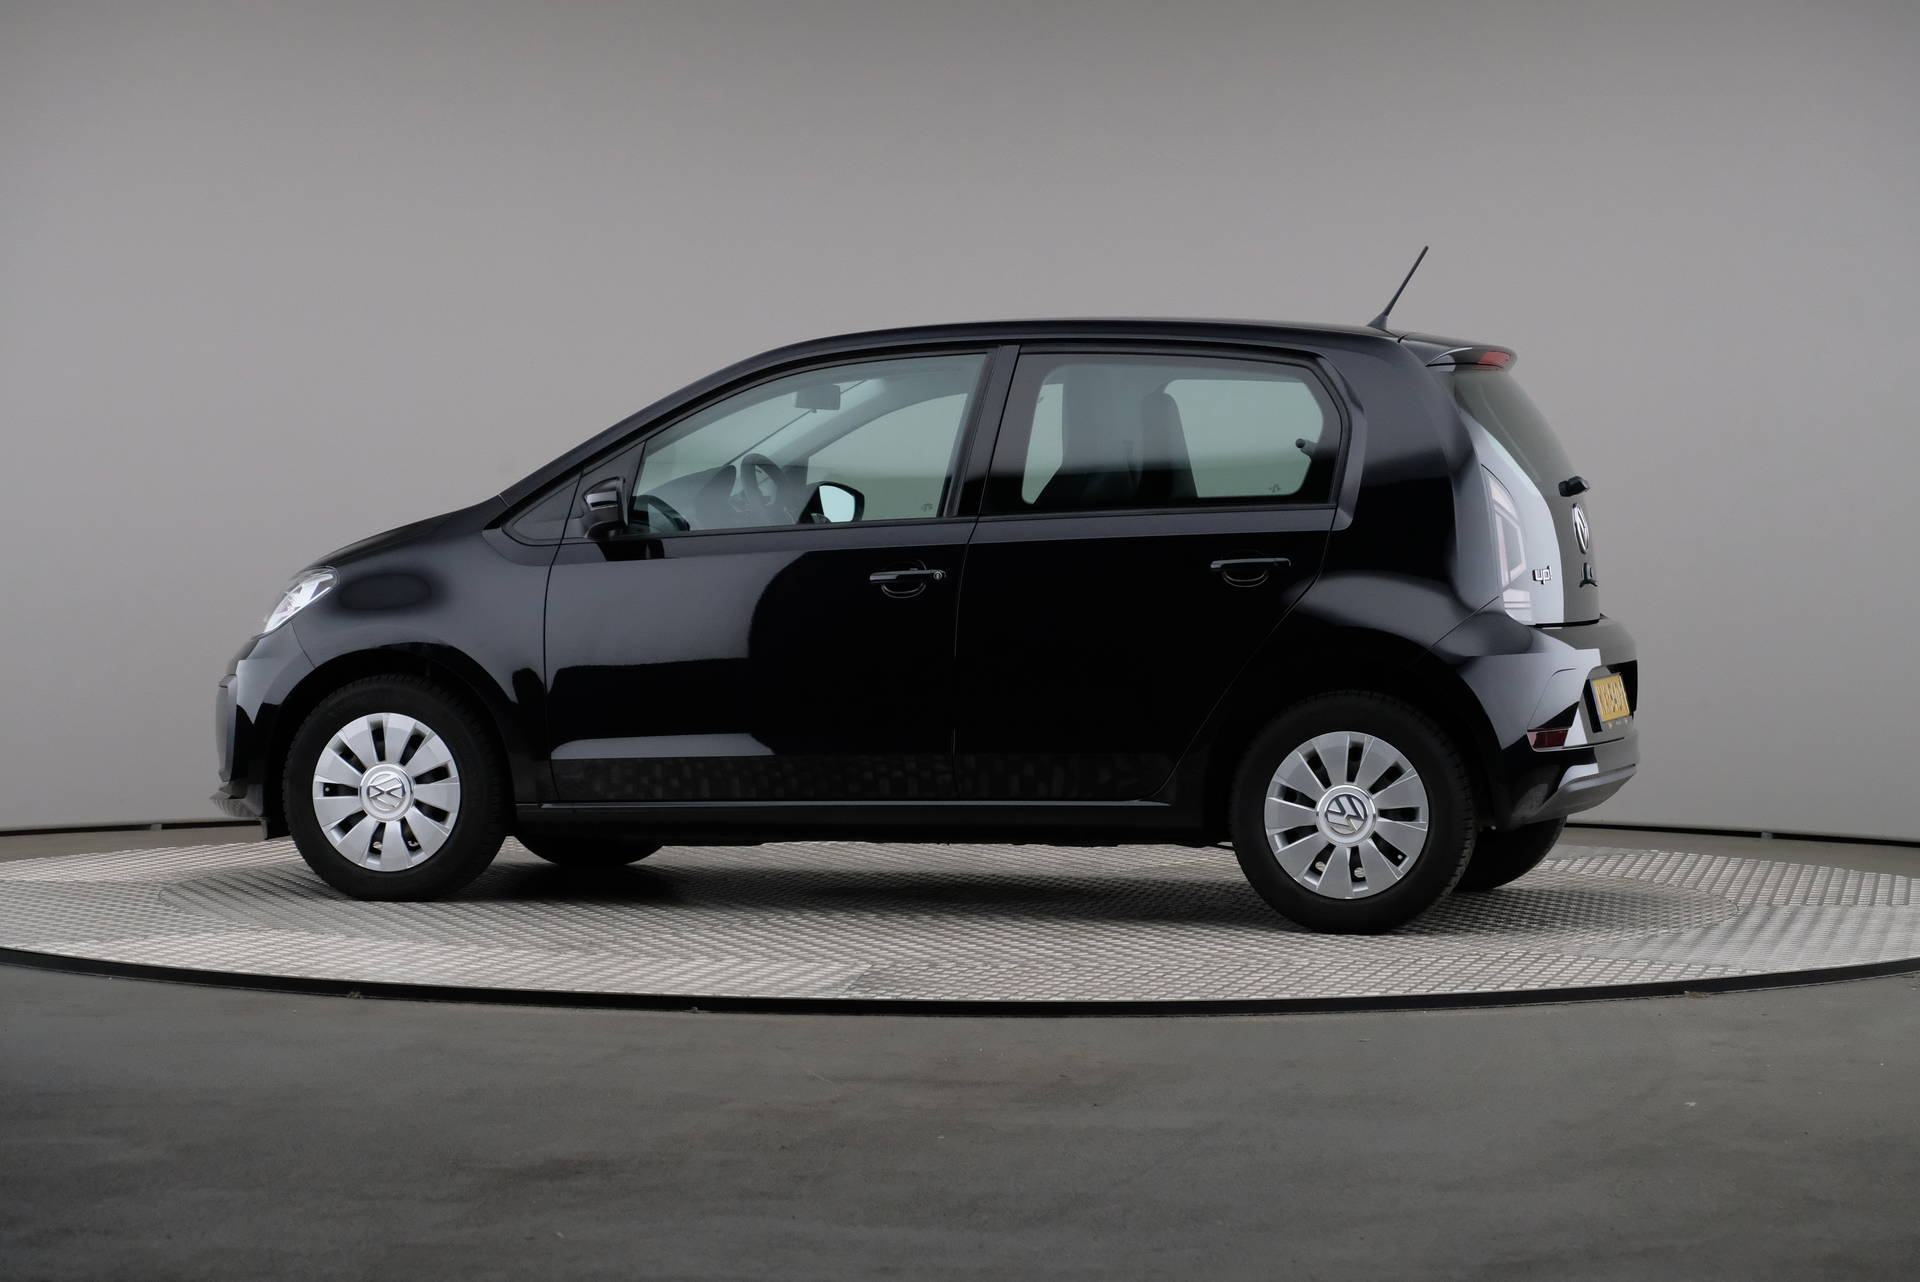 Volkswagen up! 1.0 44kW Move up! BlueMotion Technology, Airconditioning, 360-image7